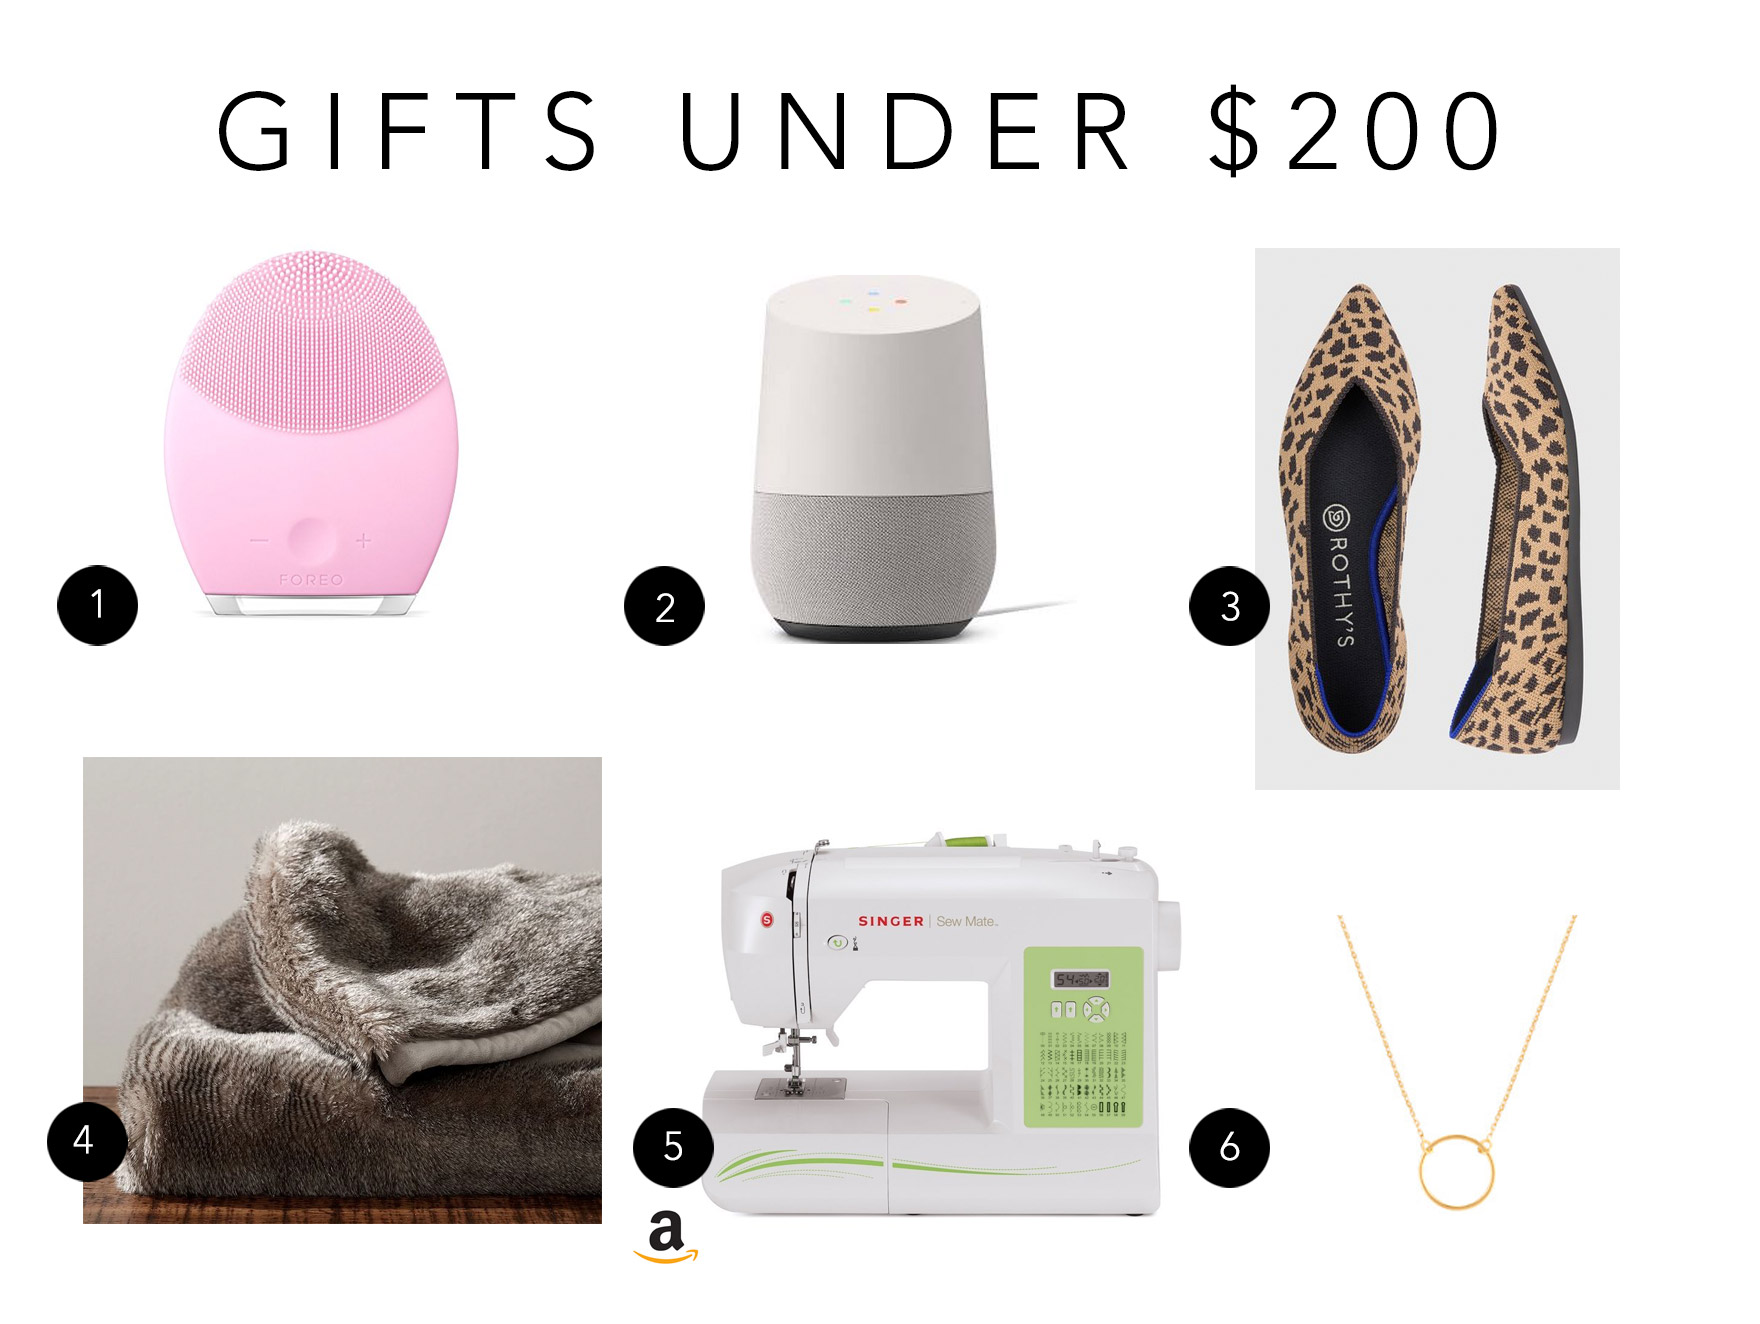 gift guide for Christmas products under $200